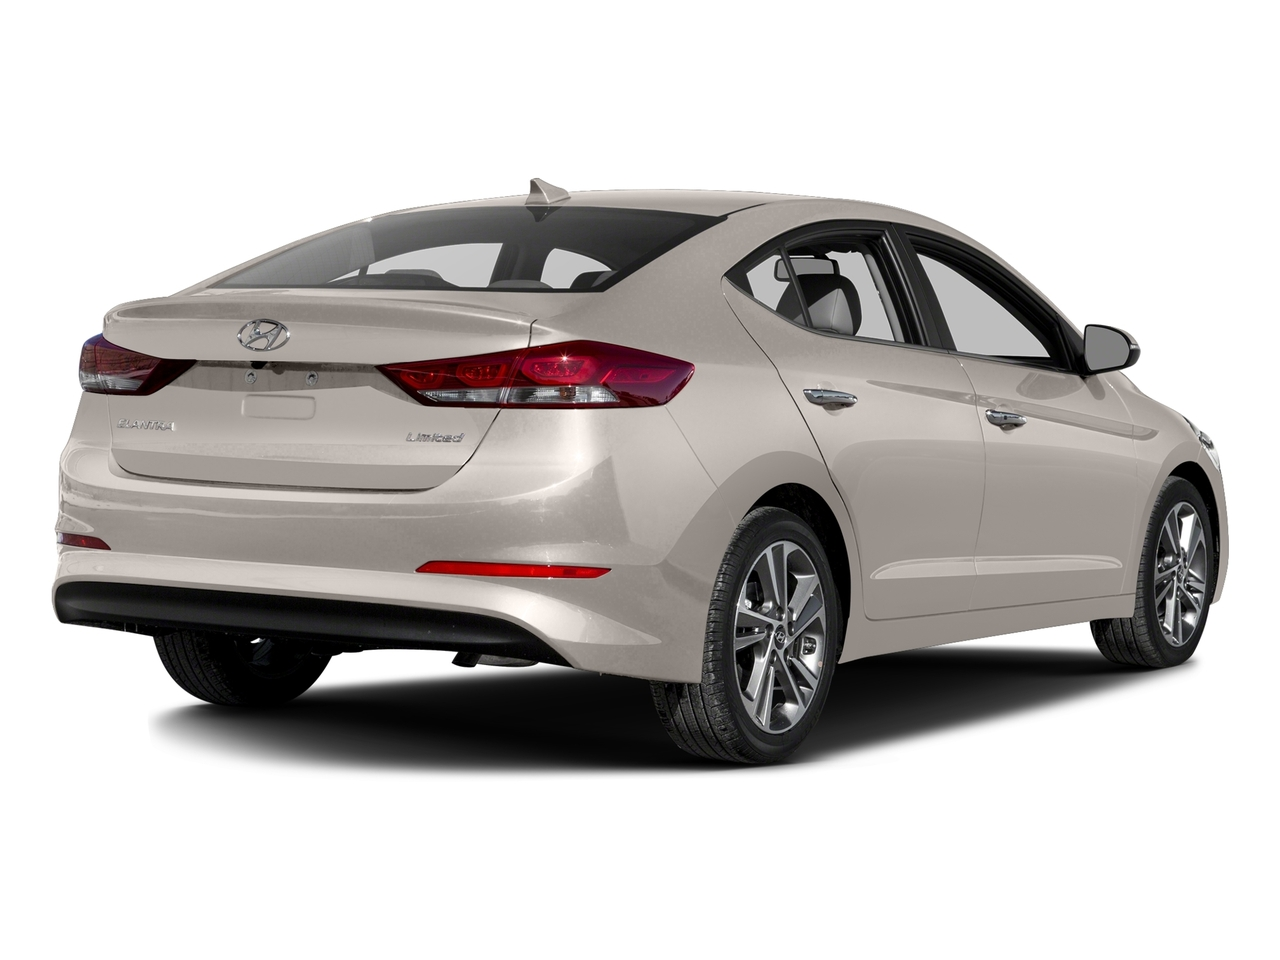 2017 Hyundai Elantra LIMITED 4dr Car Slide